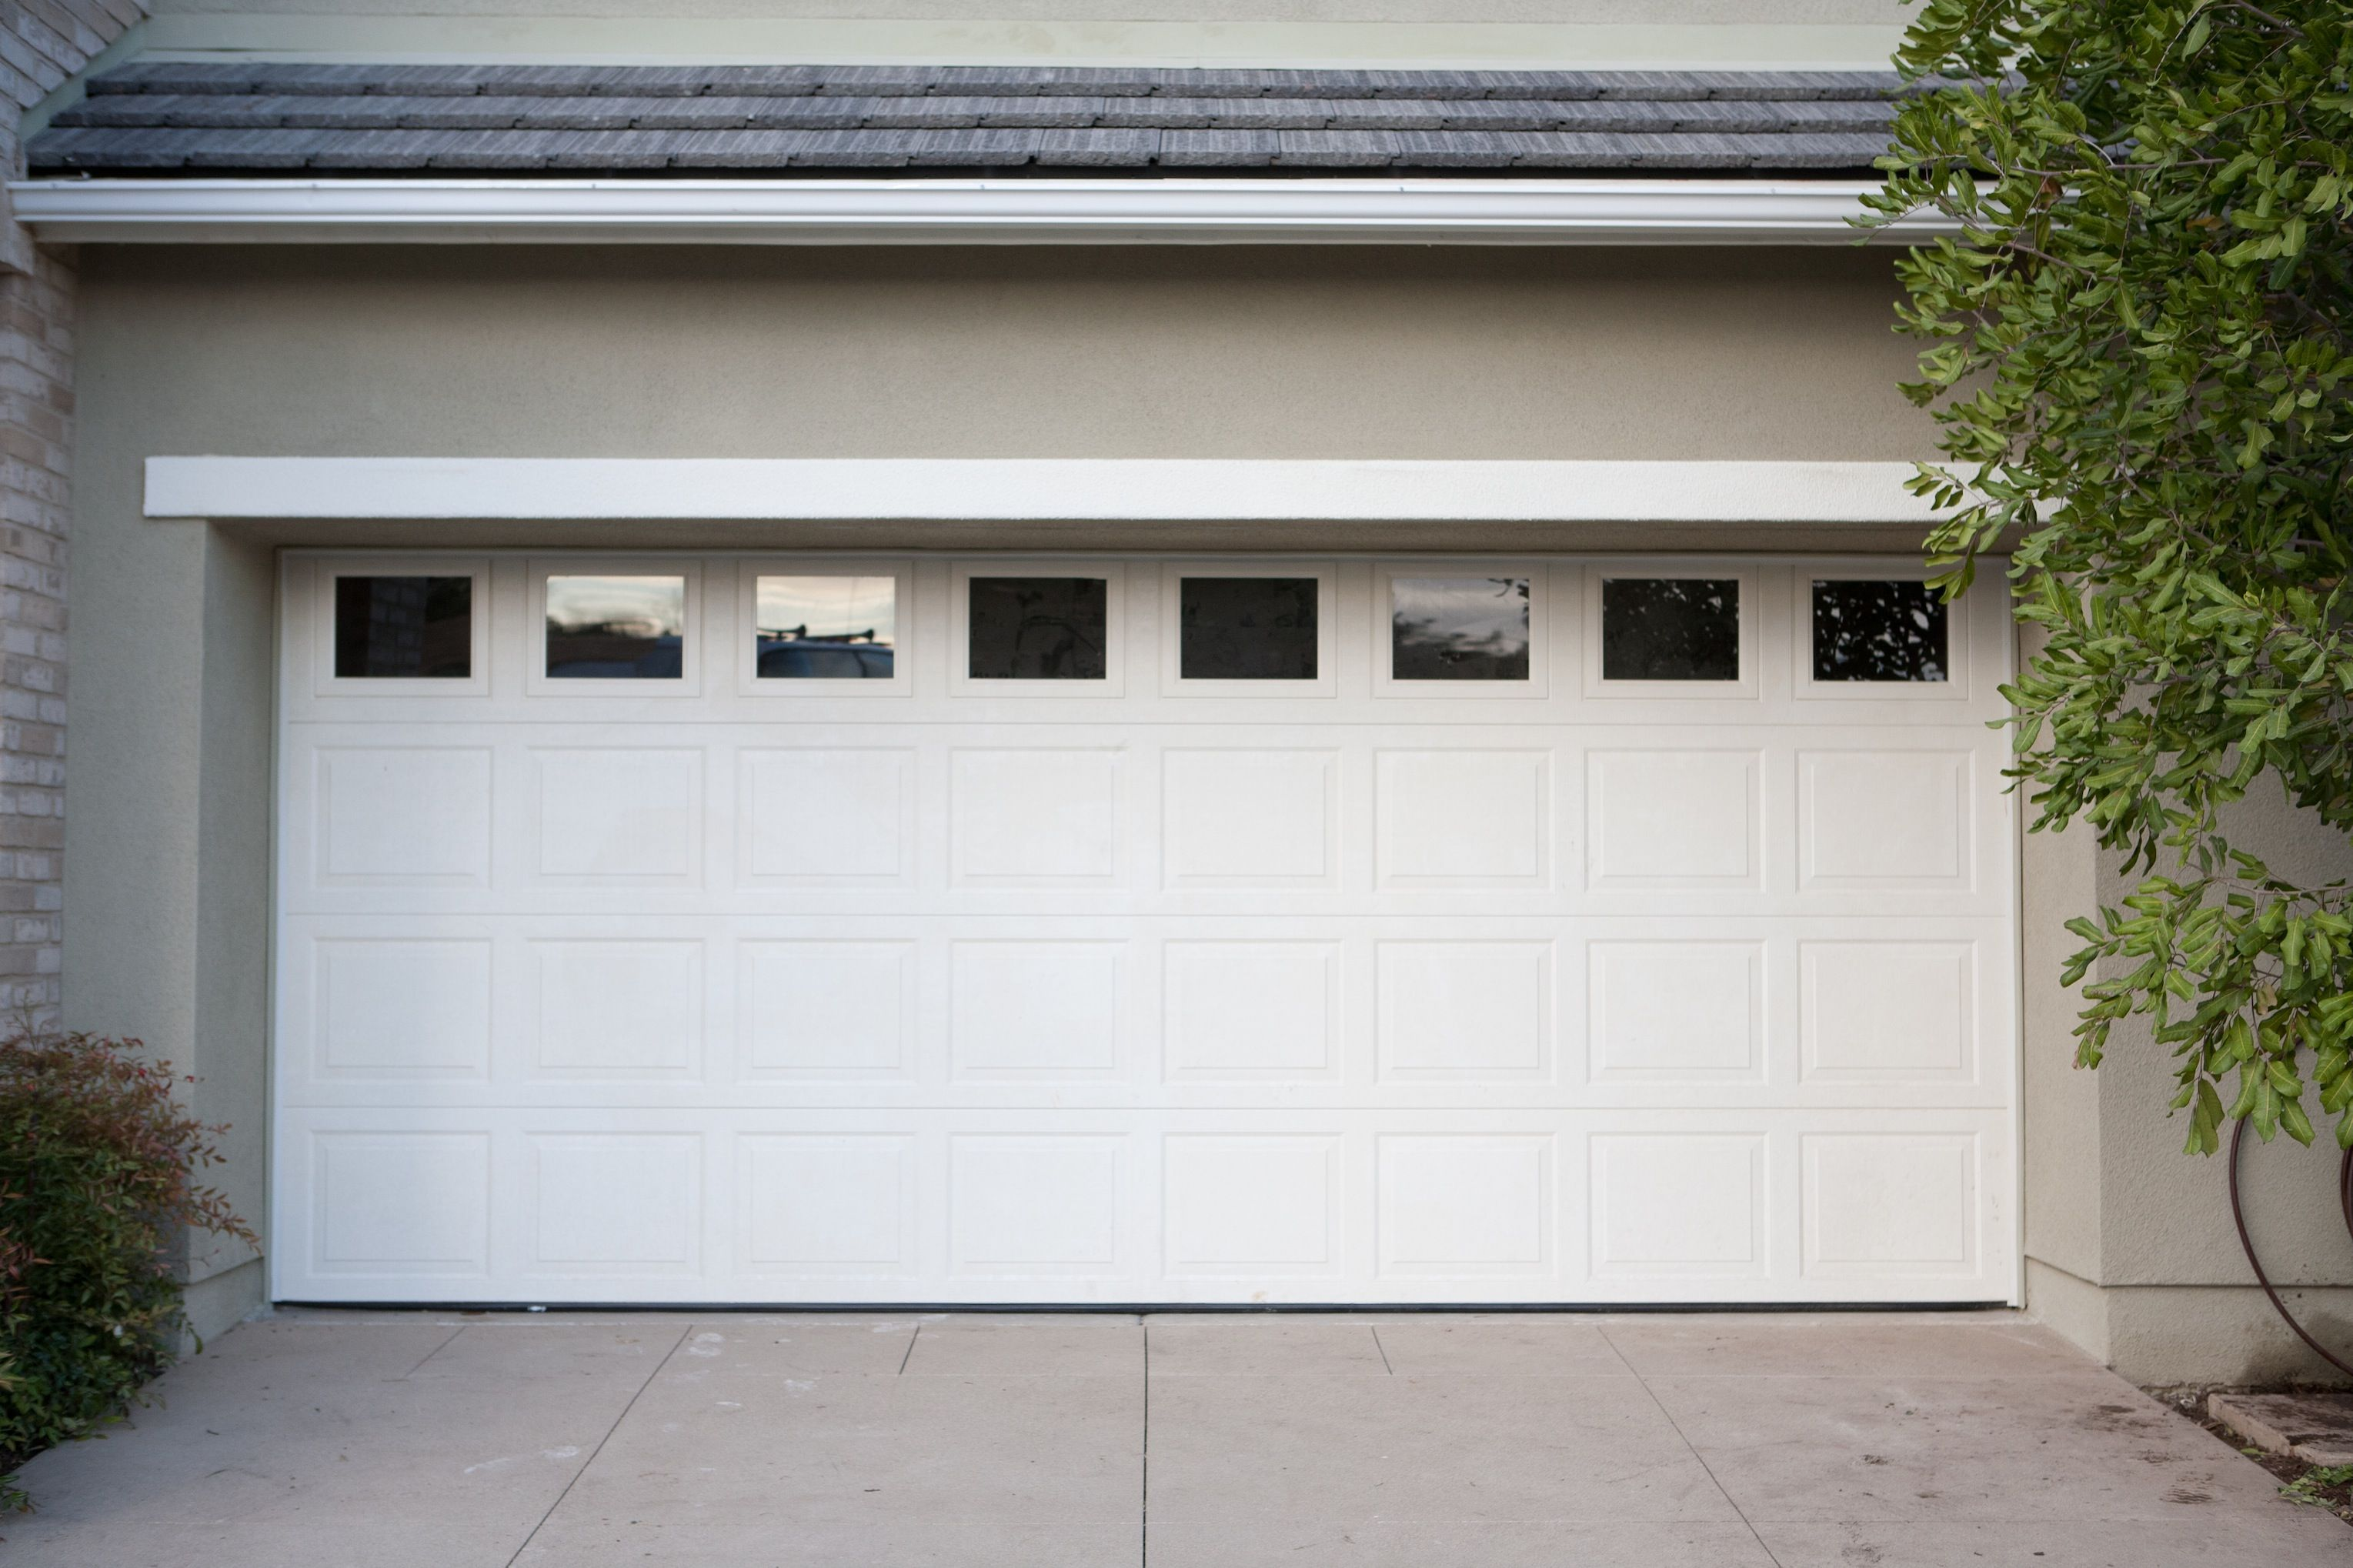 Sectional Roll Up Garage Doors These Stylish Metal Roll Up Garage